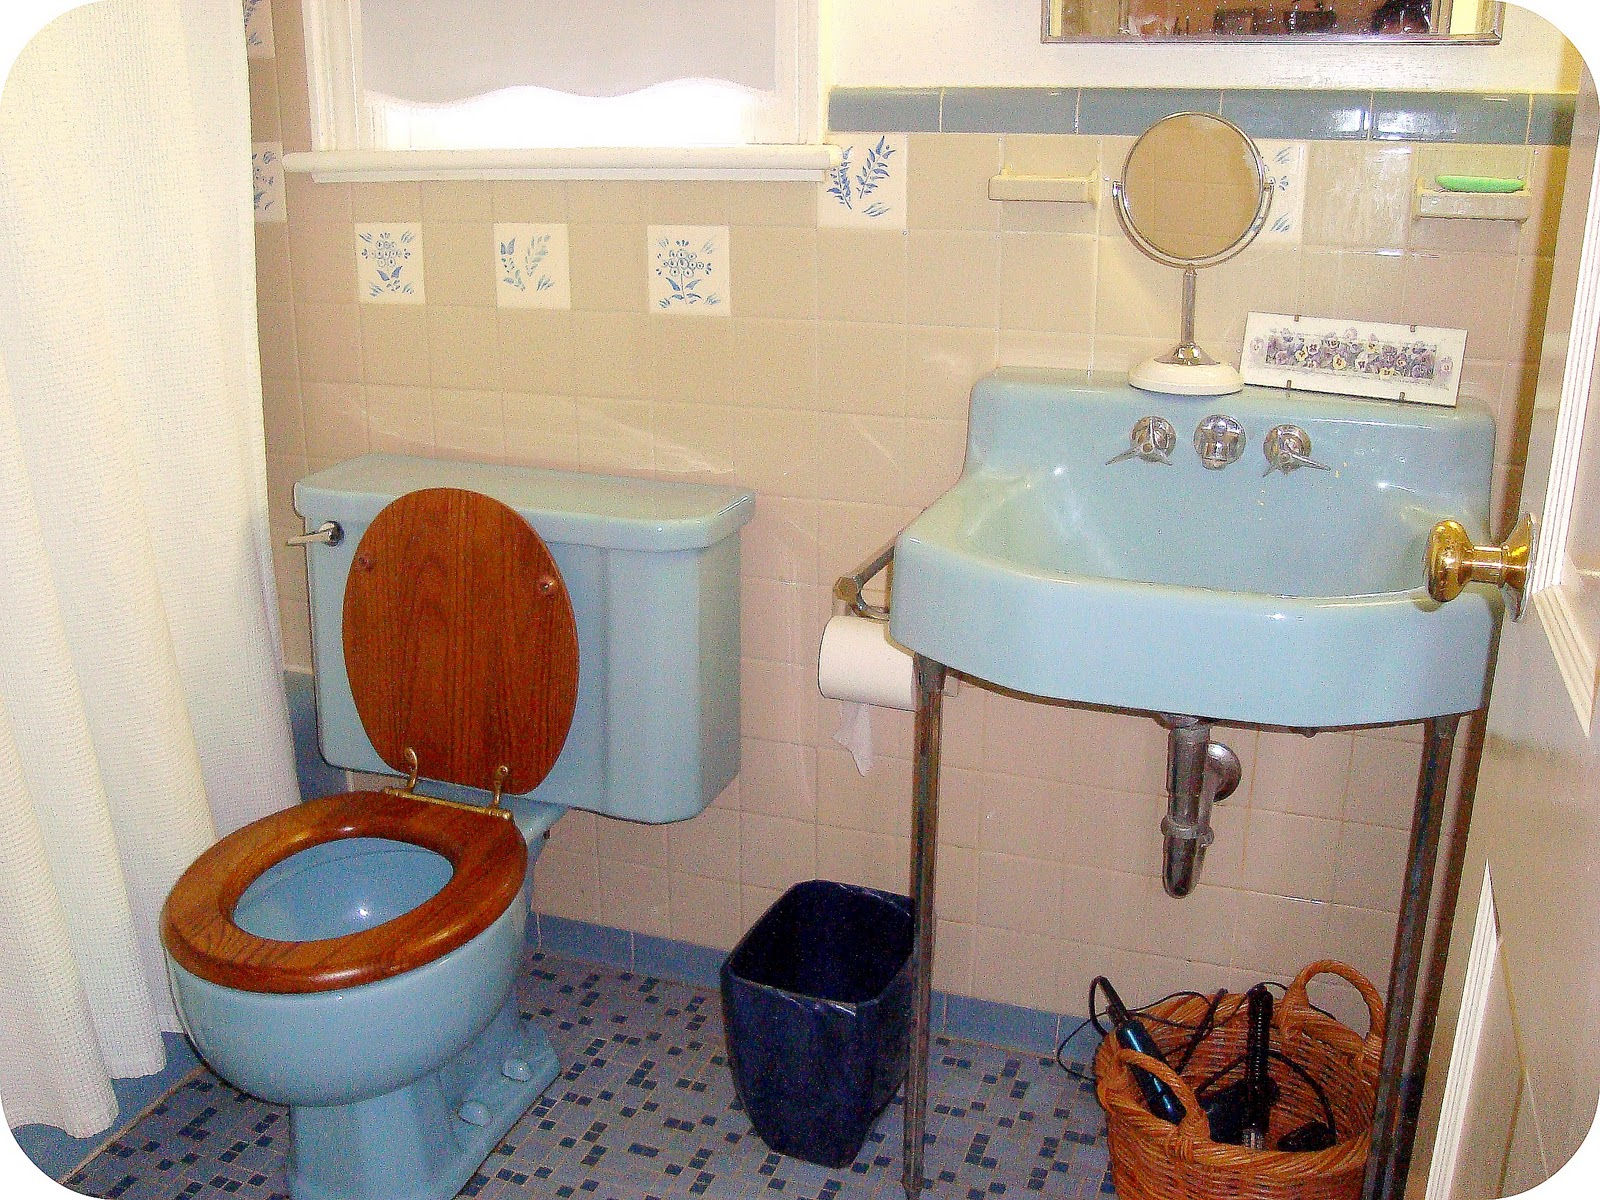 Lighting Basement Washroom Stairs: This Life Of Ours: House Tour Part Two: The Downstairs